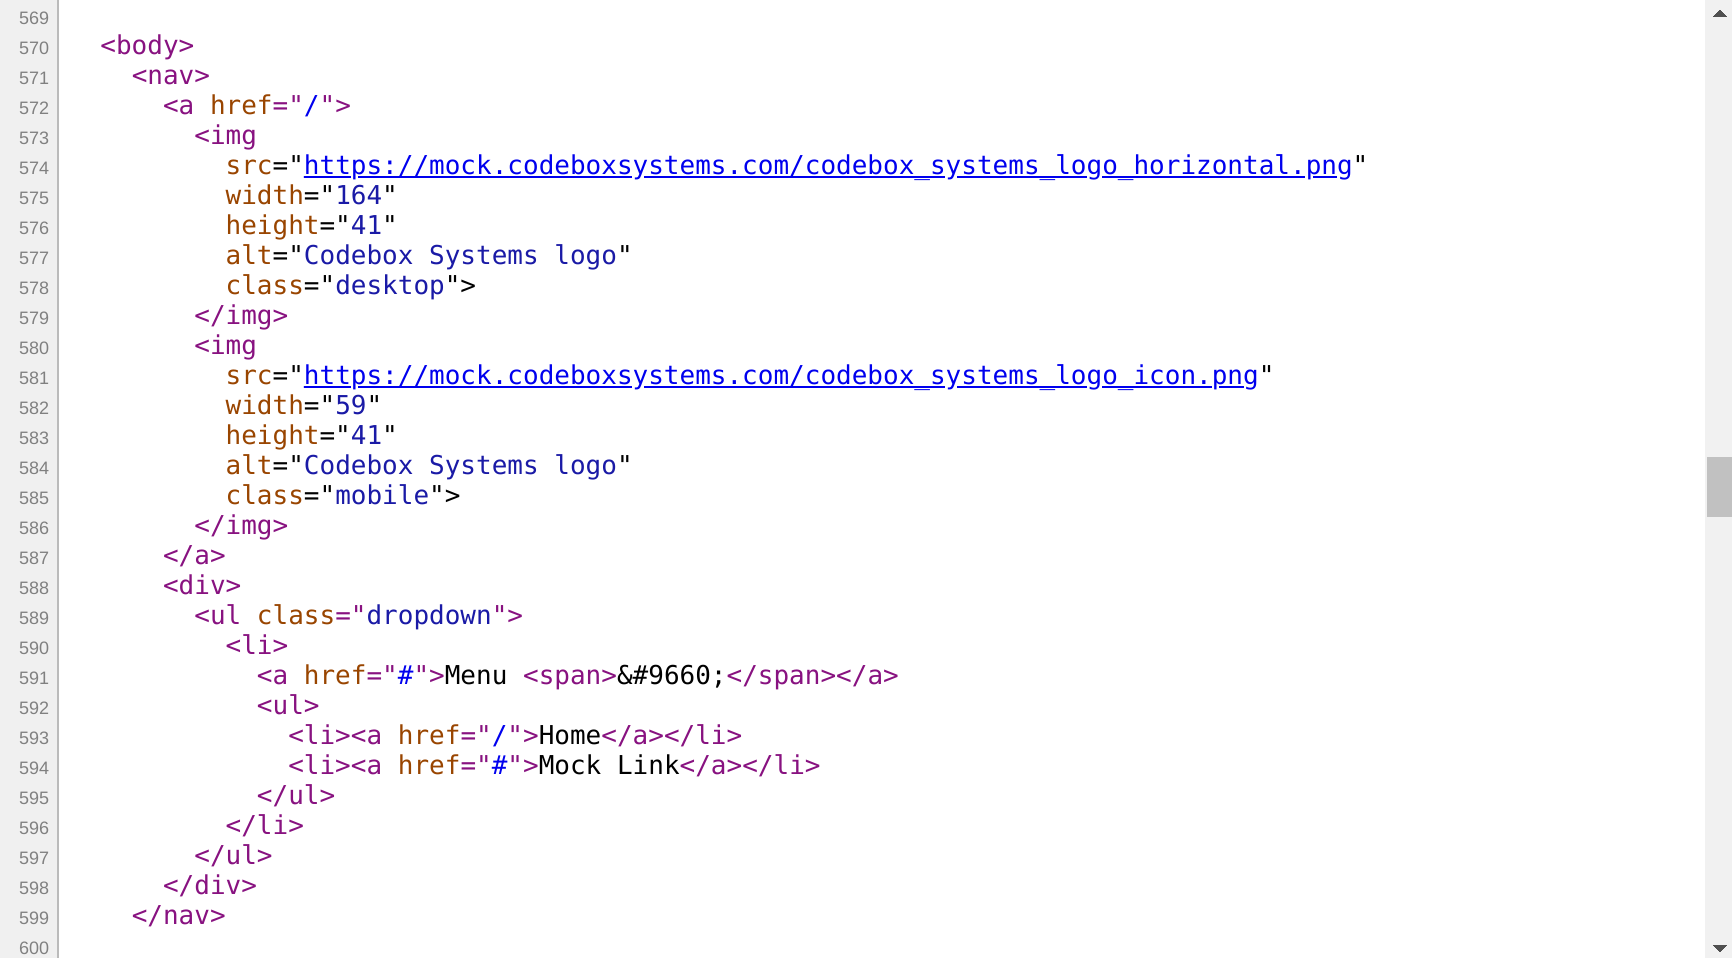 Web page with the Chrome browser inspector enabled, showing the HTML element that matches the element in the source code